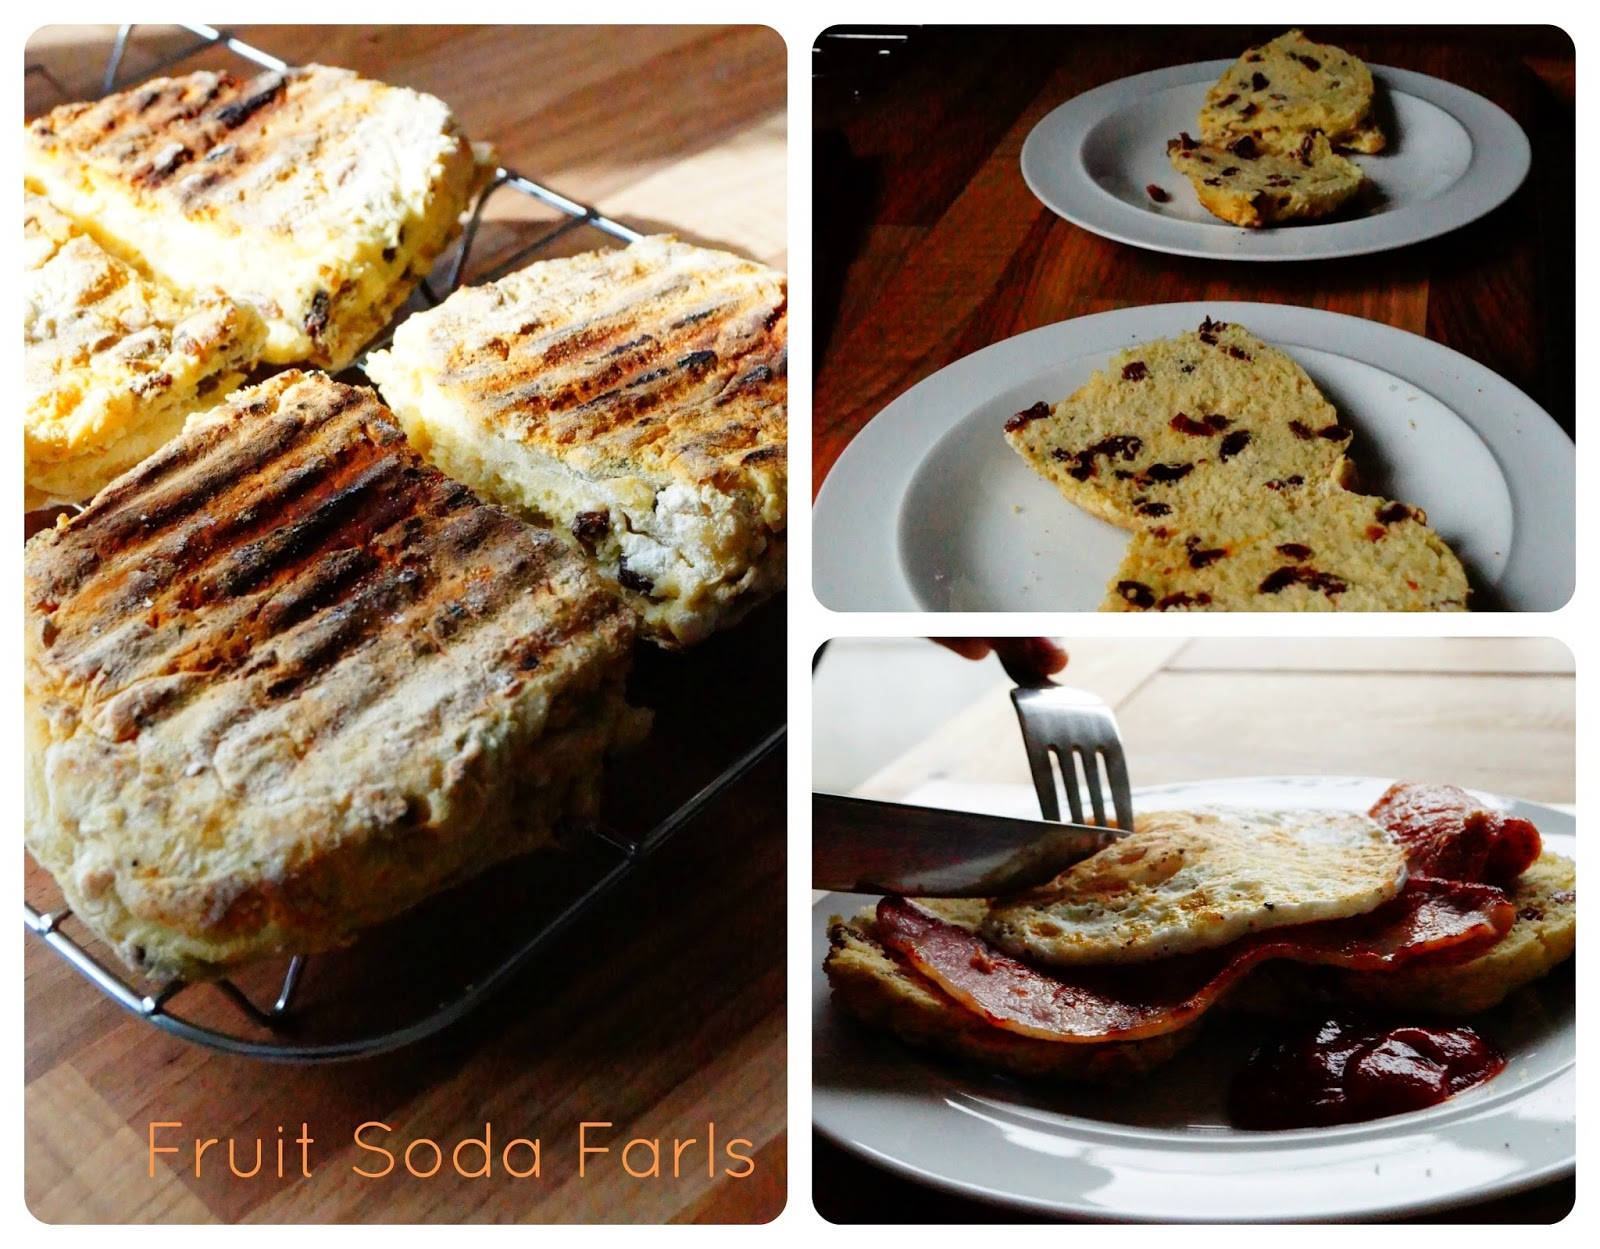 Fruit Soda Farls - 'growourown.blogspot.com' ~an allotment blog